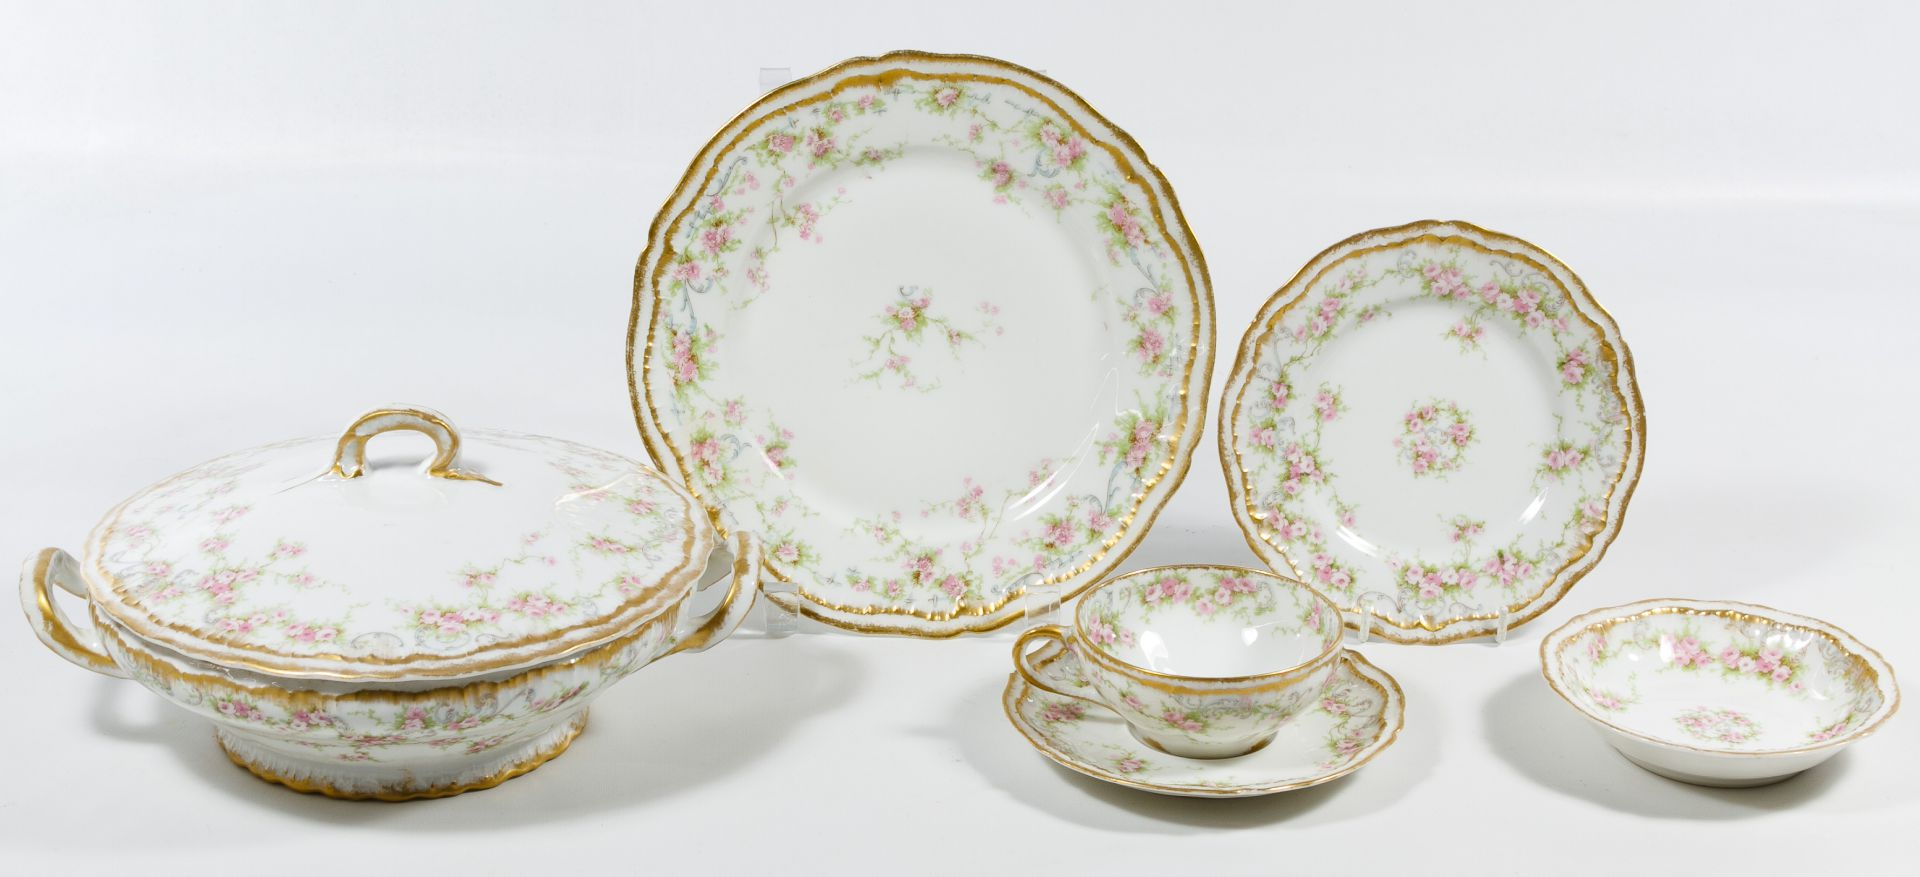 Lot 426 Theodore Haviland Limoges China Service Leonard Auction